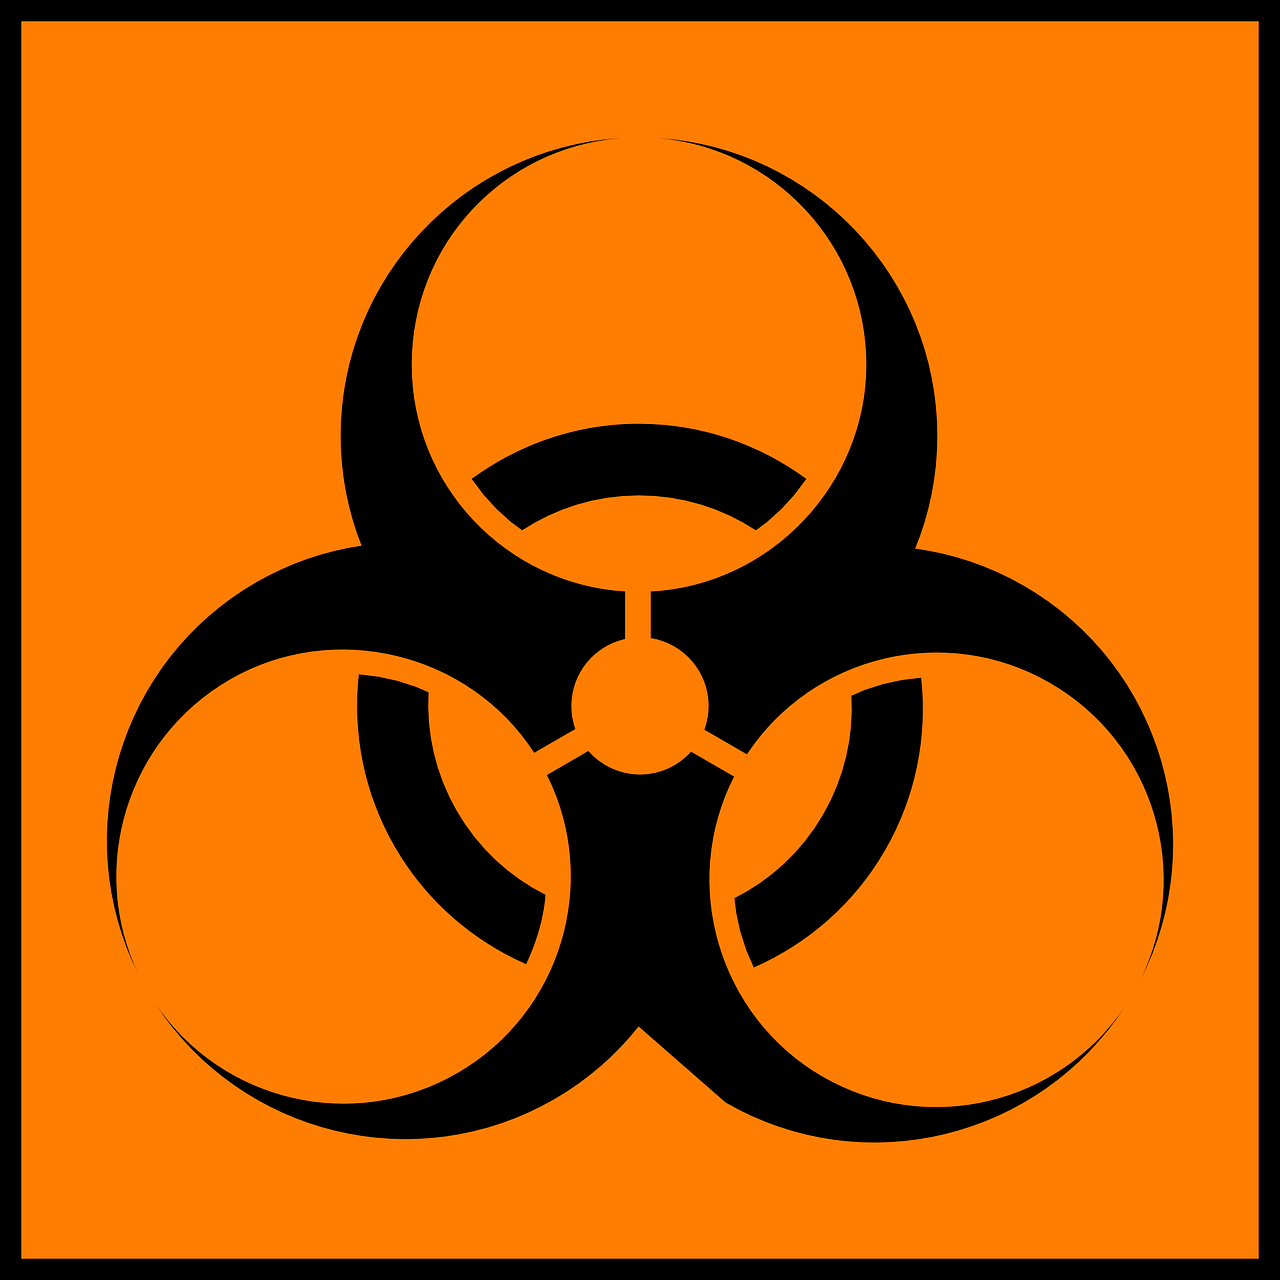 Source: https://pixabay.com/en/warning-trash-hazard-medical-waste-38639/